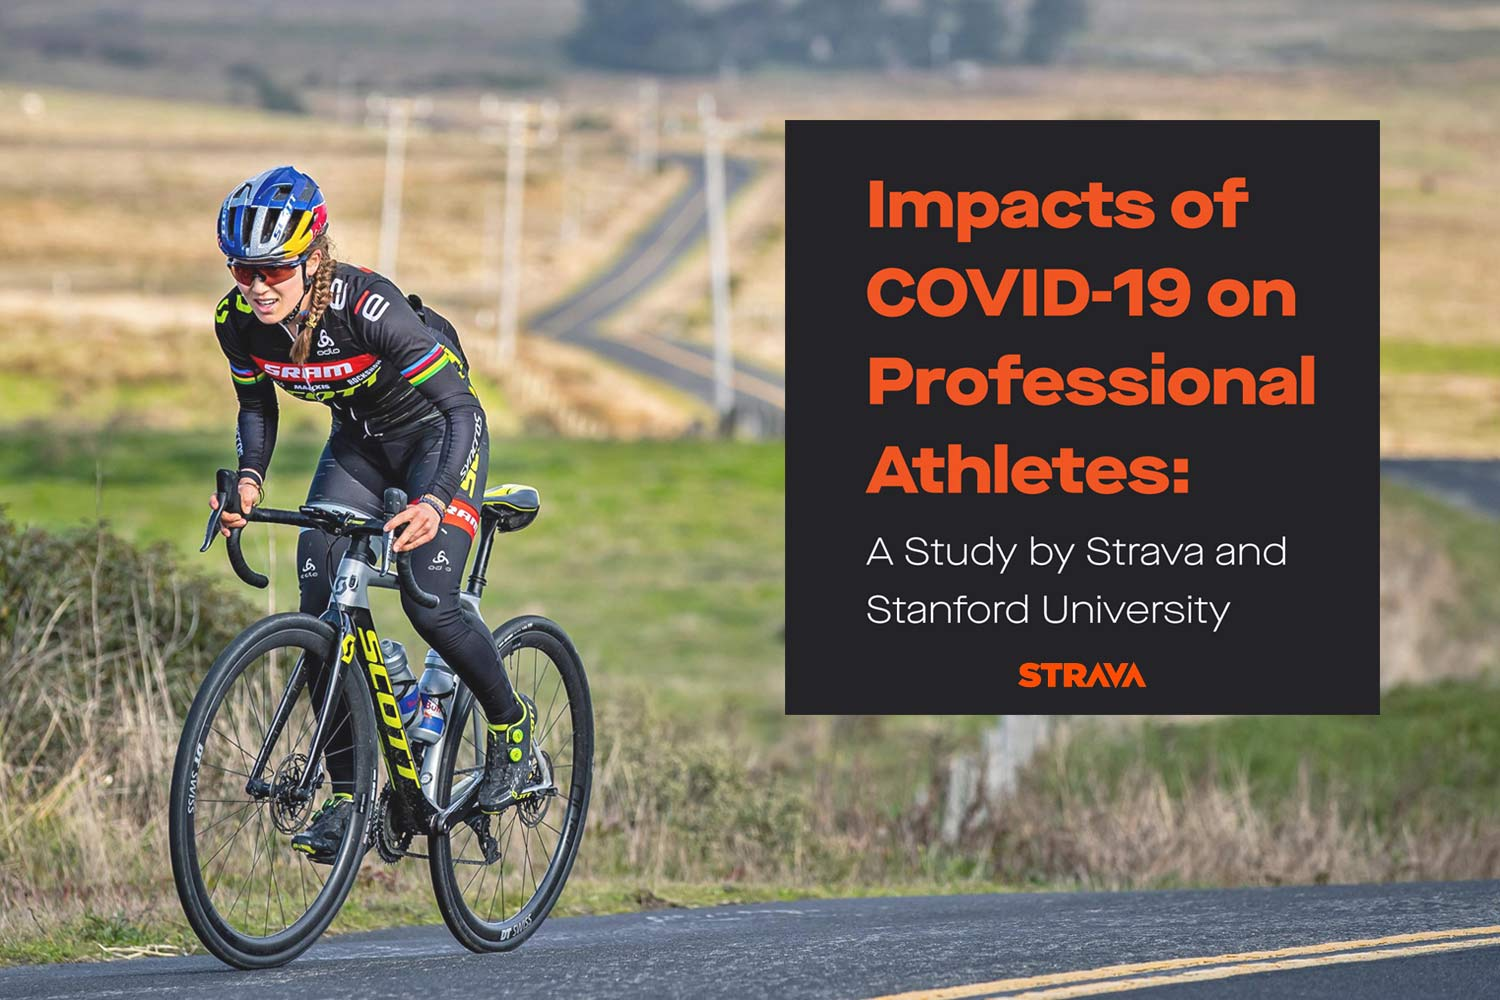 Strava + Stanford study shows mental, physical & financial effects of COVID-19 on professional athletes